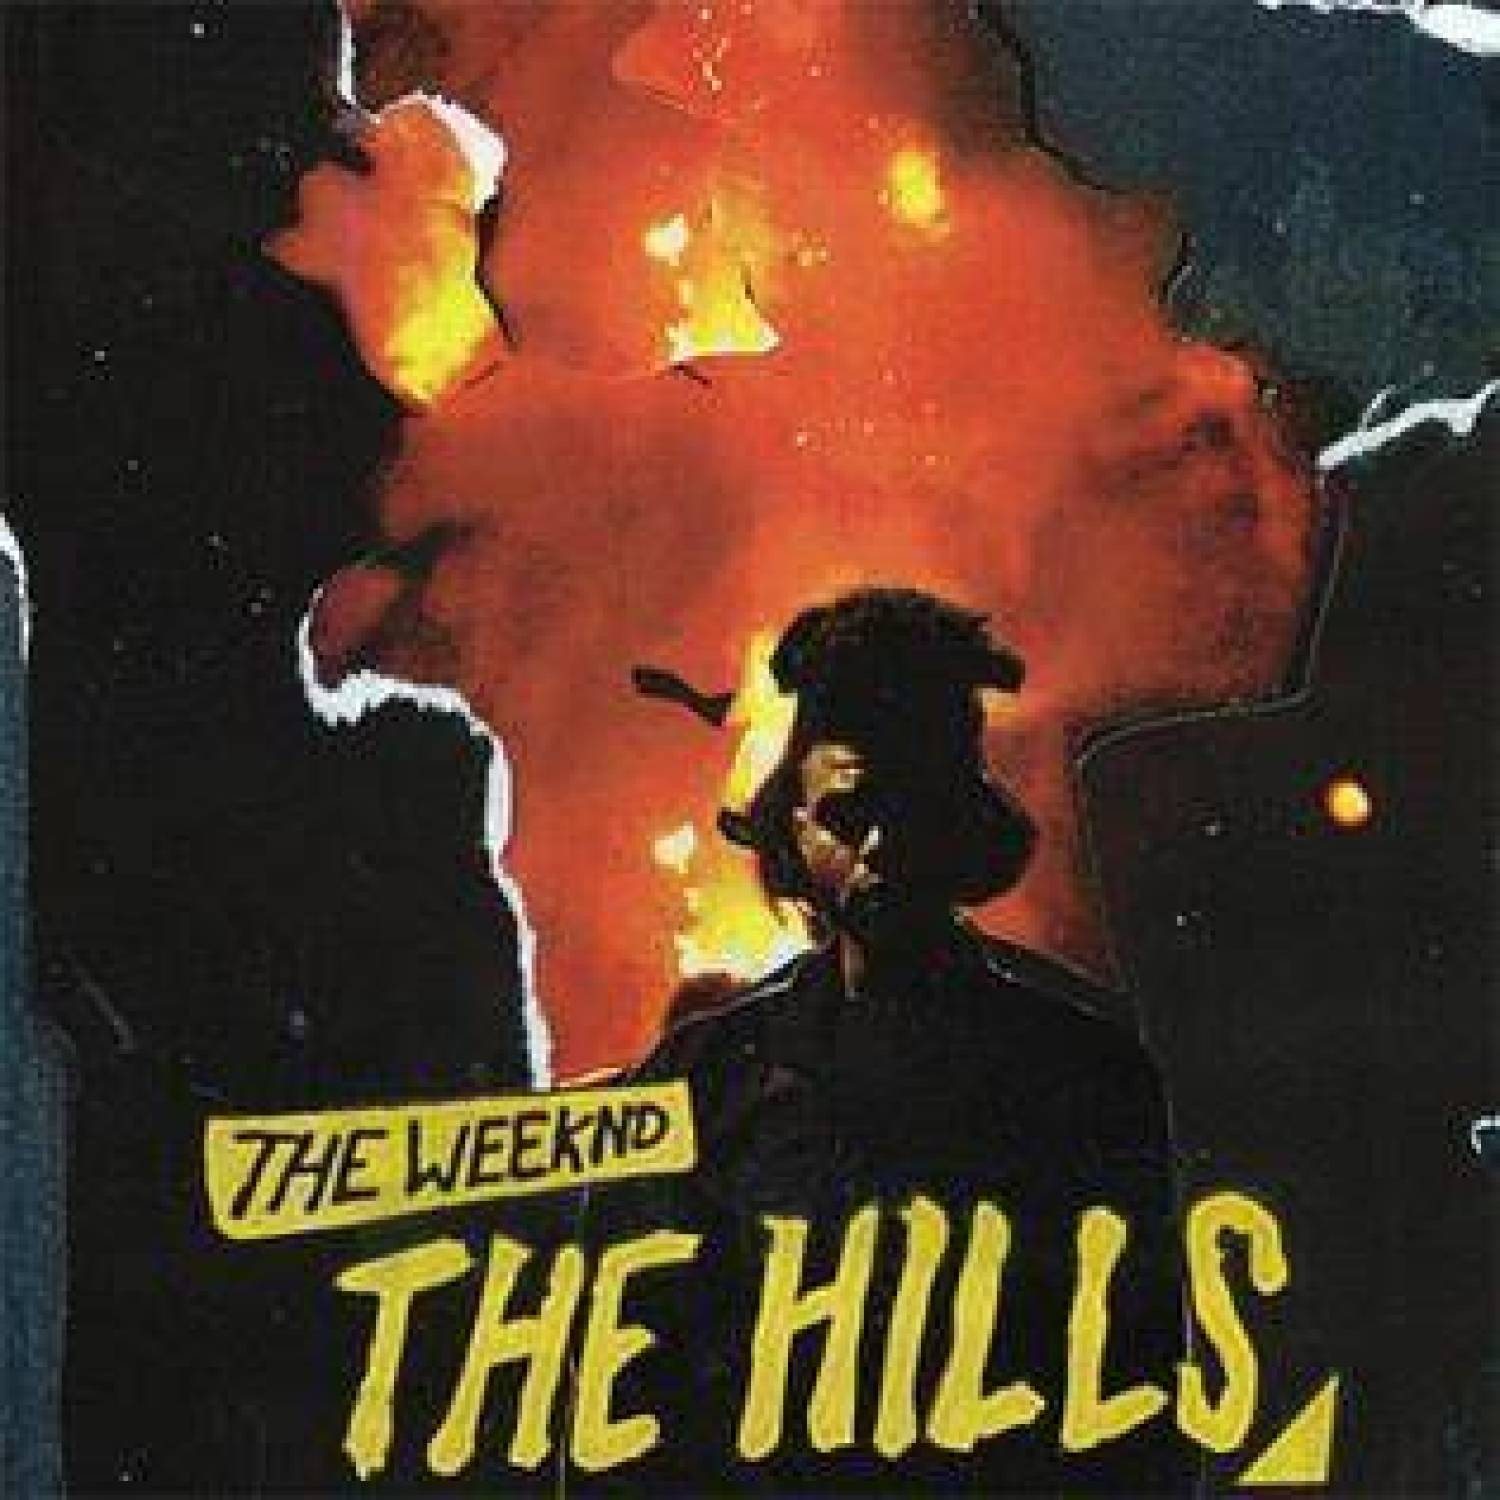 DOWNLOAD MP3: The Weeknd – The Hills(Free MP3) AUDIO 320kbps